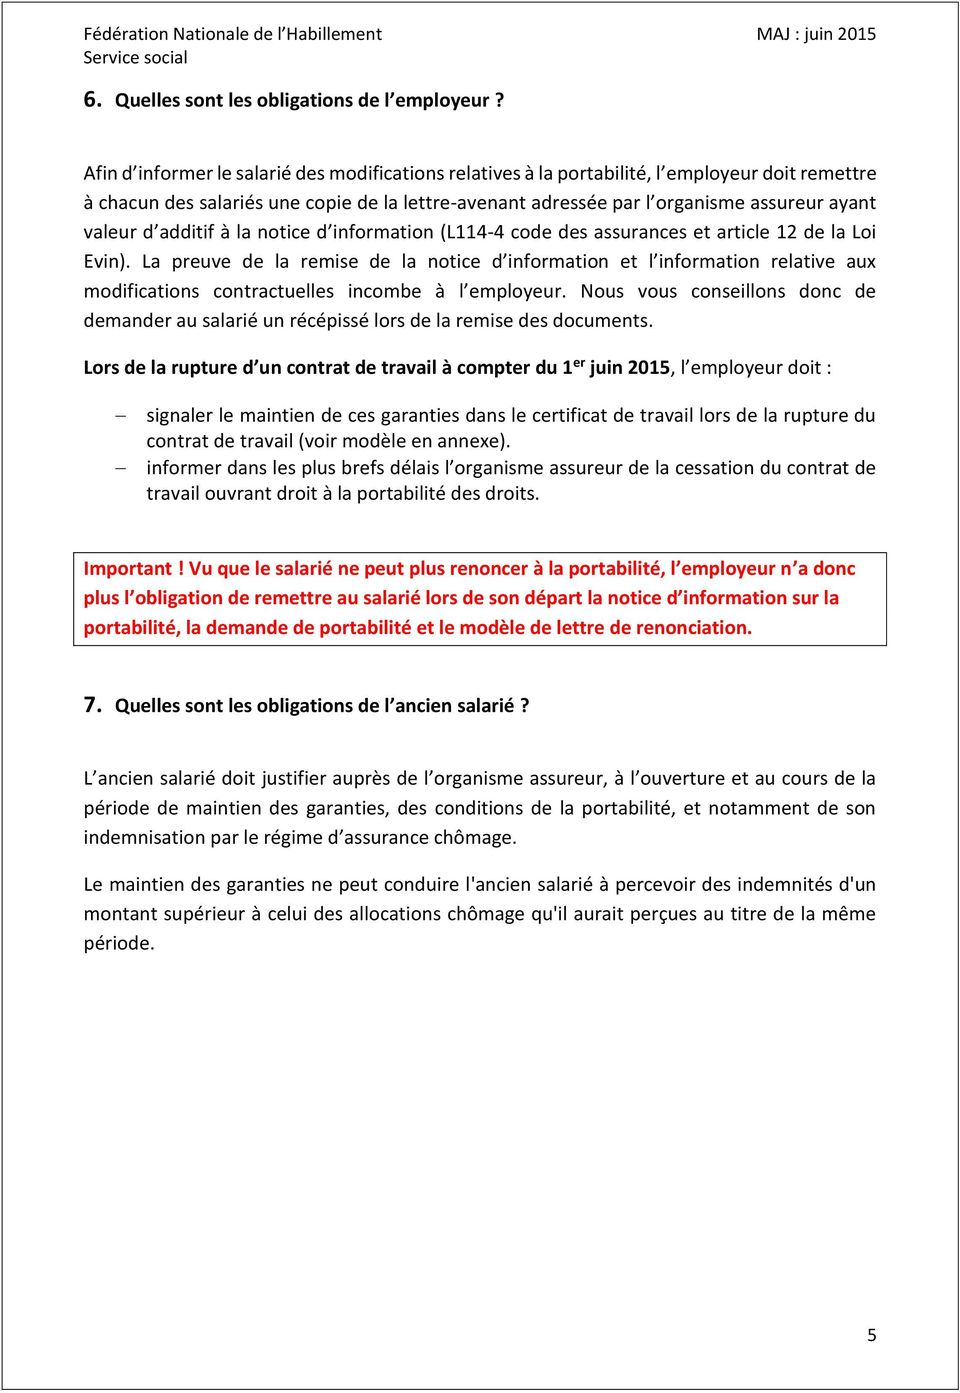 d additif à la notice d information (L114-4 code des assurances et article 12 de la Loi Evin).